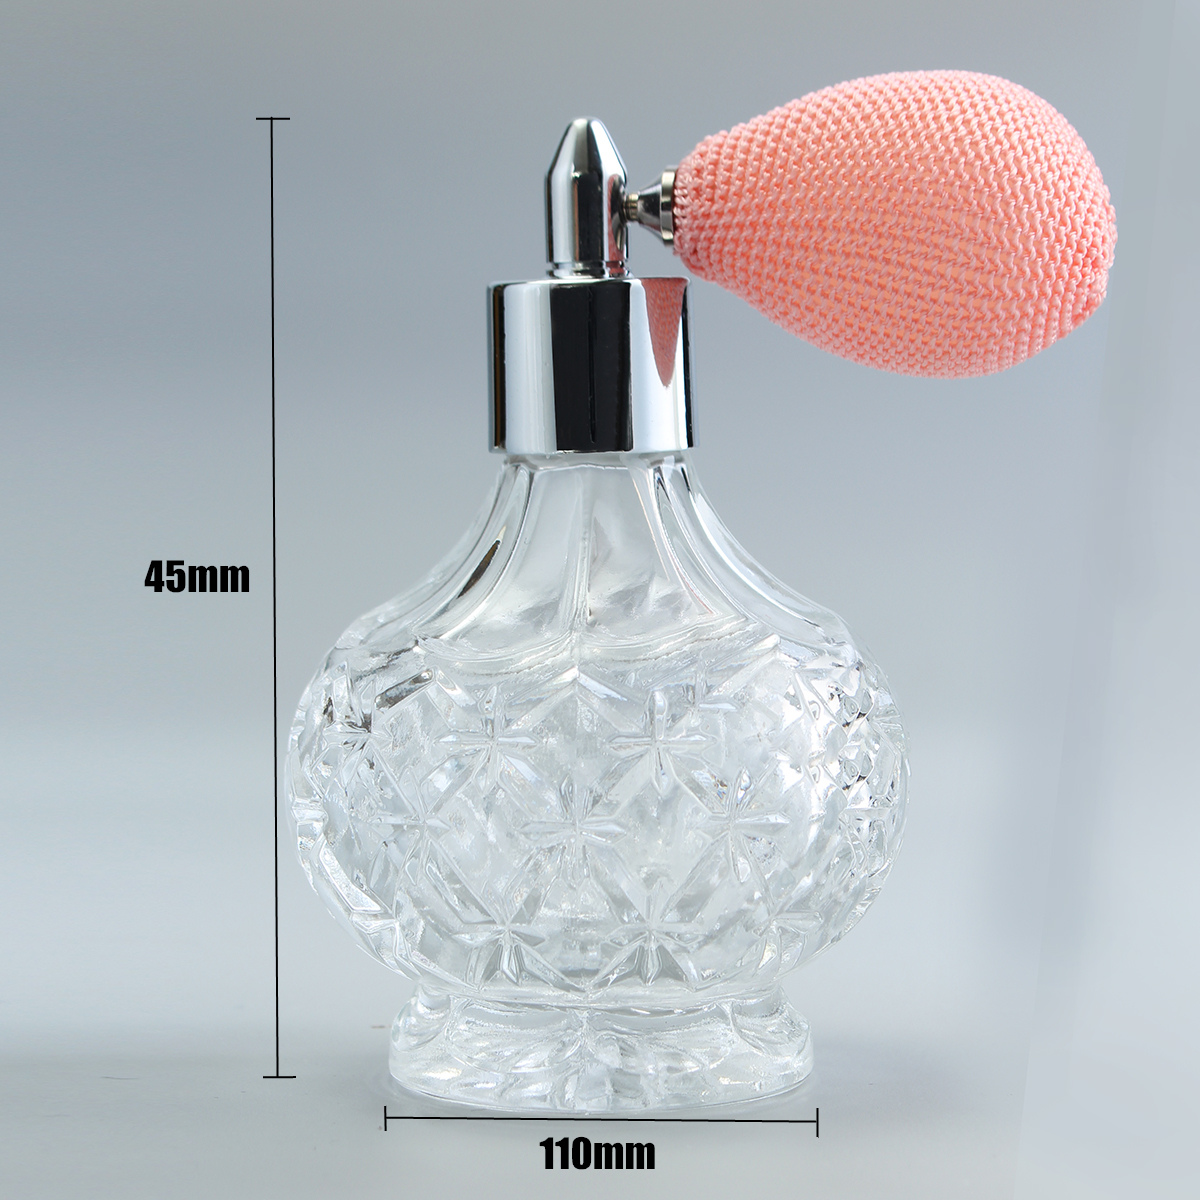 80ml Spray Atomizer Perfume Bottle